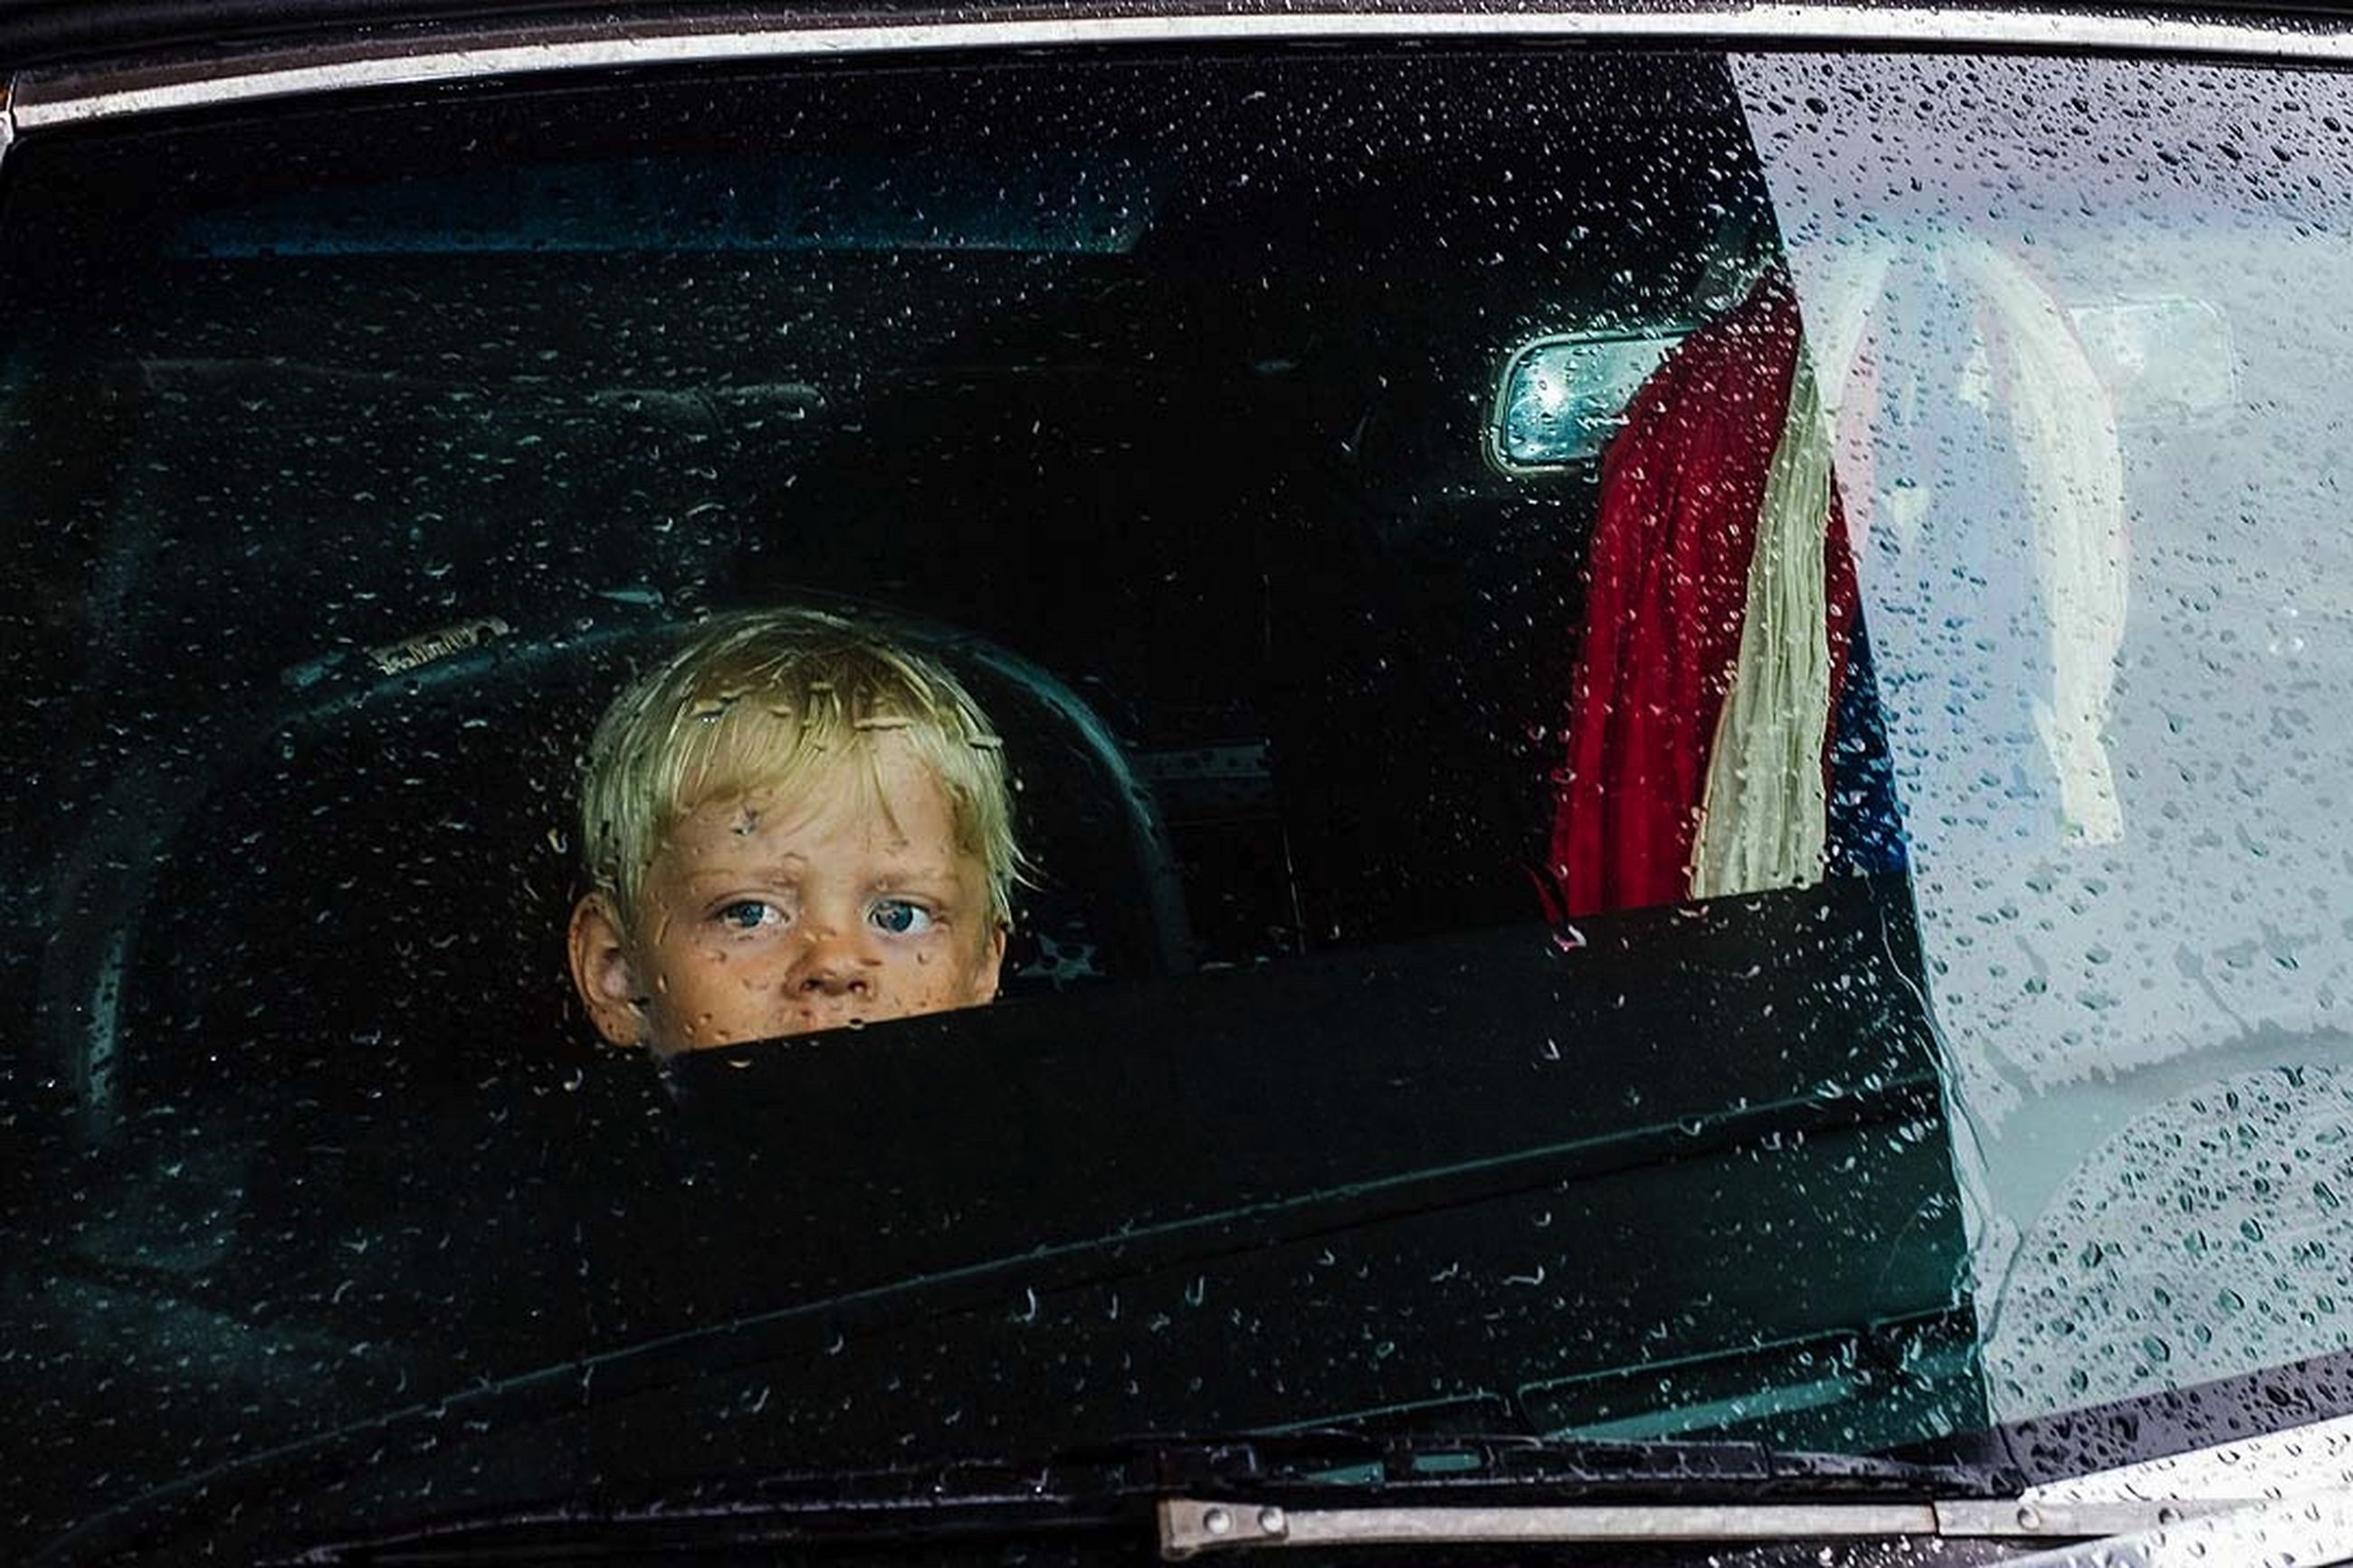 portrait, child, childhood, looking at camera, headshot, males, one person, mode of transportation, real people, men, glass - material, transportation, car, blond hair, front view, boys, motor vehicle, outdoors, rain, innocence